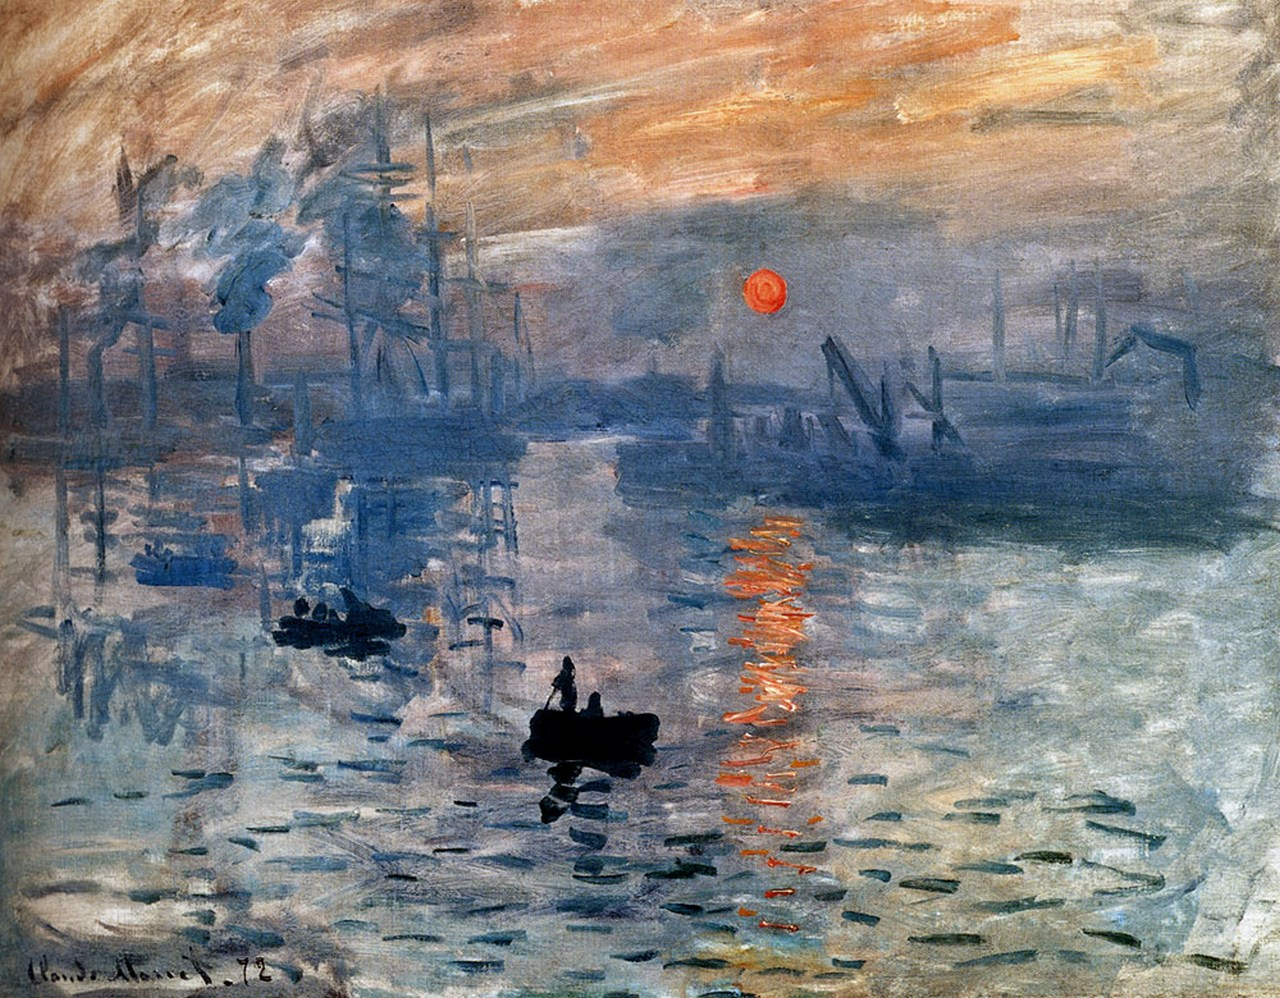 an analysis of the impressionist style of painting in the monets impression the sunrise